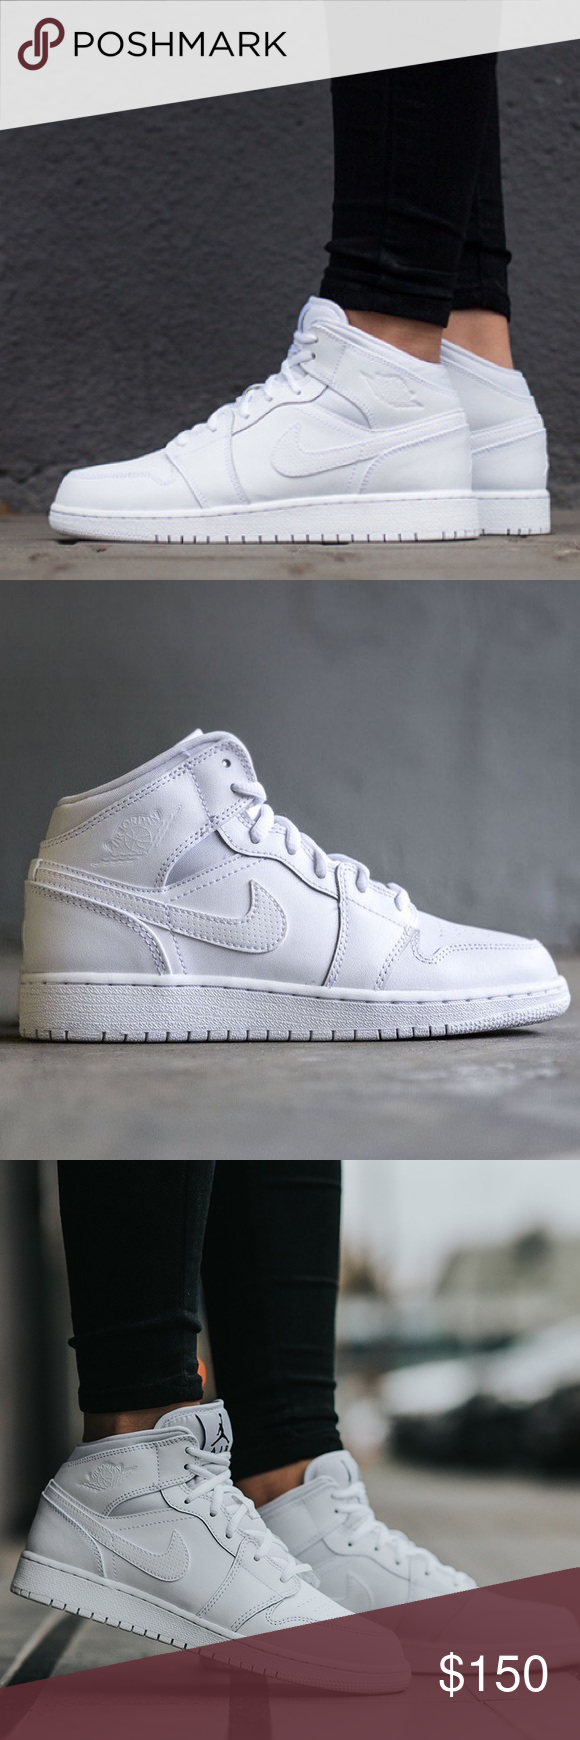 new styles 783f0 24e75 Nike Air Jordan 1 all white women's size 8 shoes Brand new ...